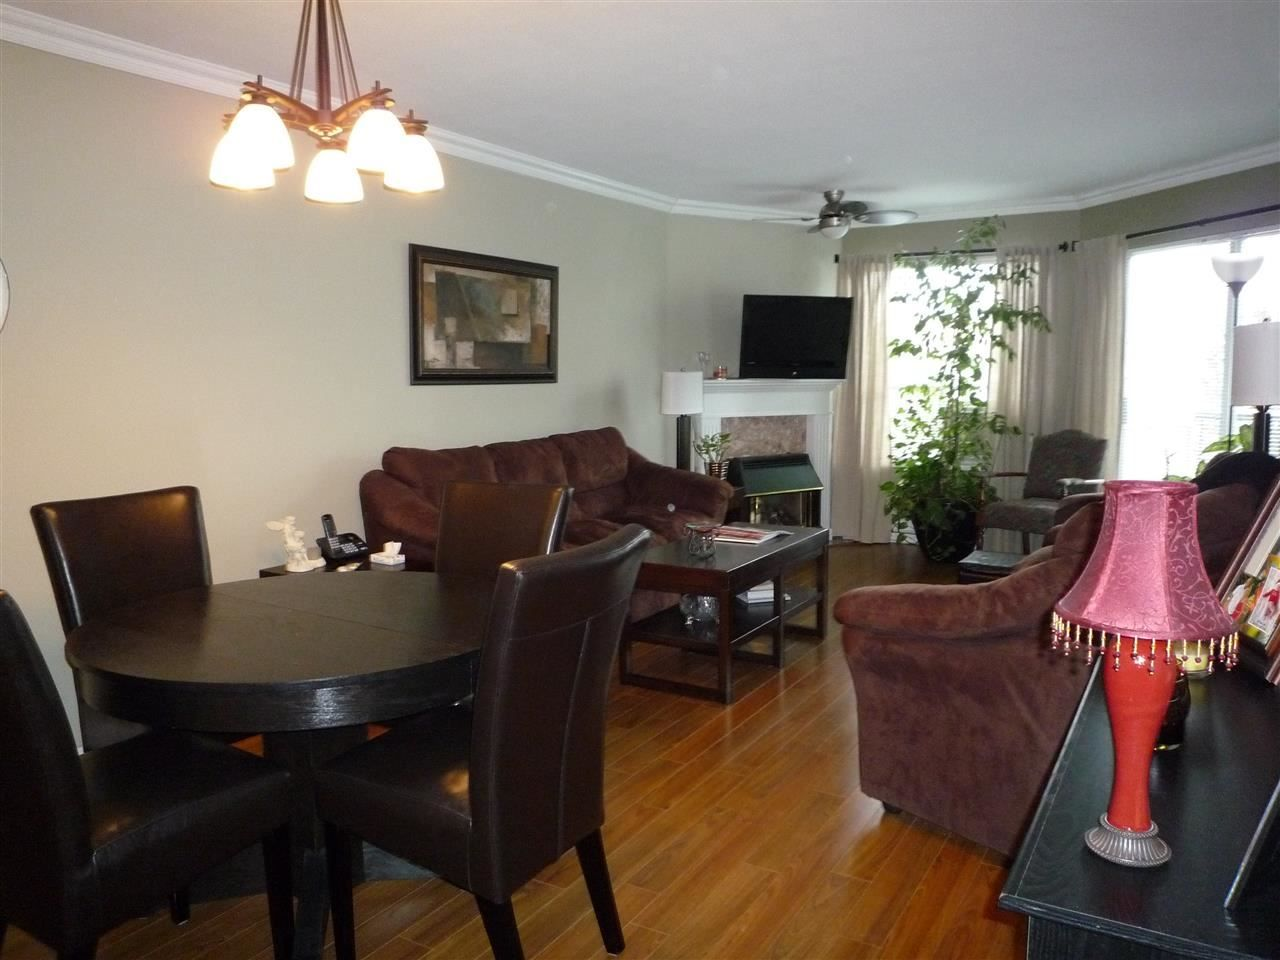 """Photo 6: Photos: 104 9400 COOK Street in Chilliwack: Chilliwack N Yale-Well Condo for sale in """"THE WELLINGTON"""" : MLS®# R2076679"""